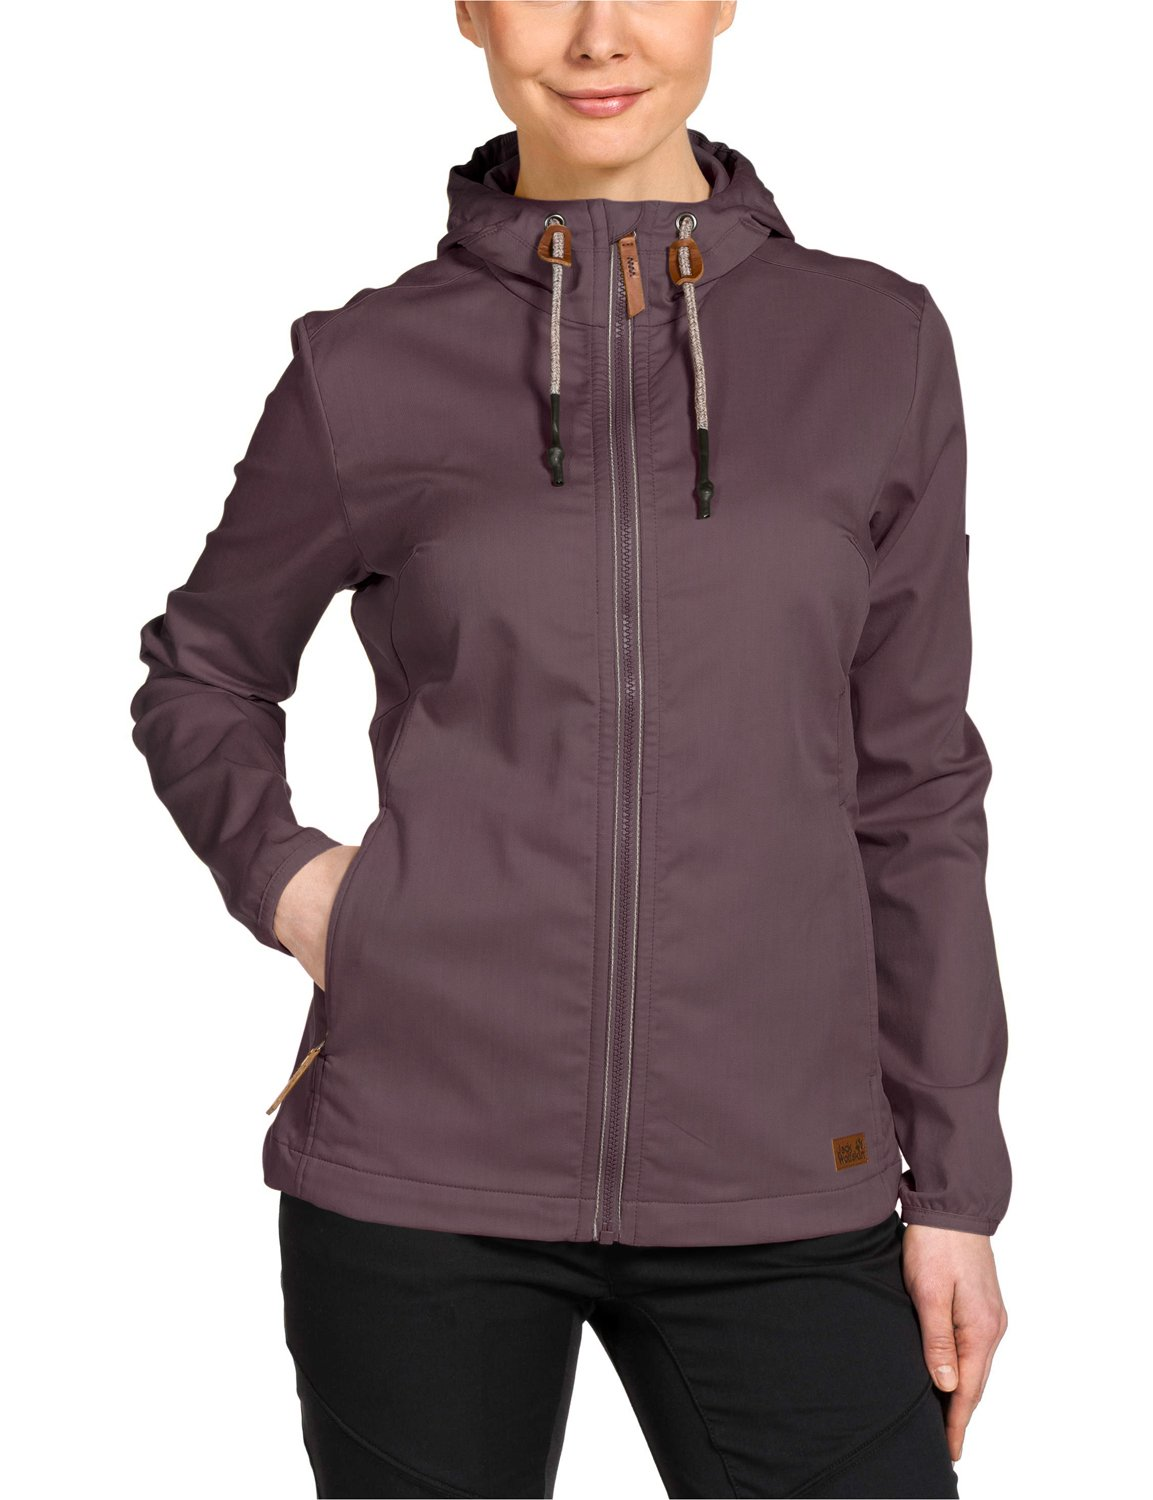 Jack Wolfskin Ladies Manitoba II Softshell Jacket Mulberry XL by Jack Wolfskin